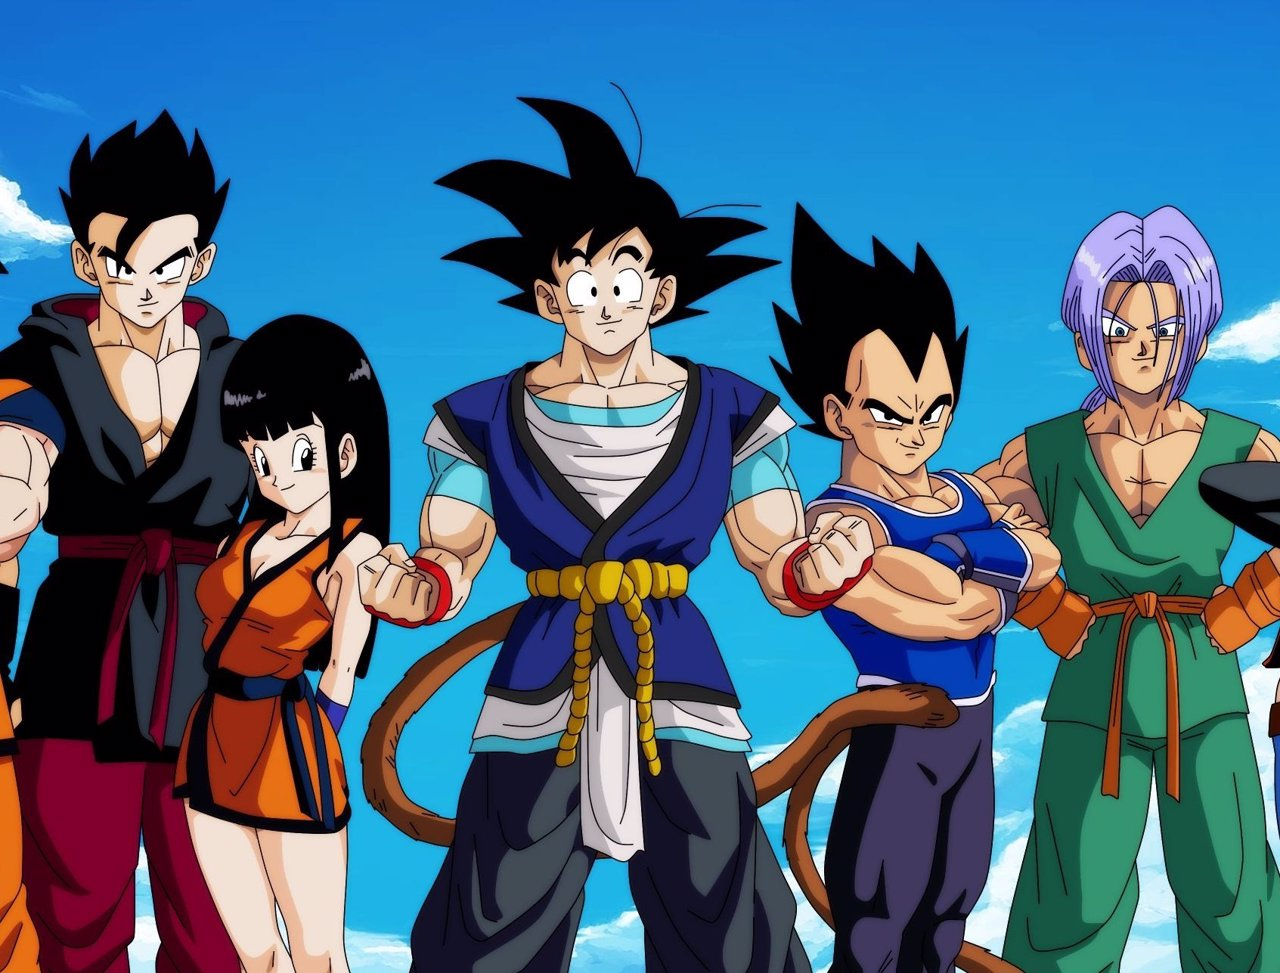 Akira toriyama carga contra dragon ball super - Imagenes de dragon ball super descargar ...